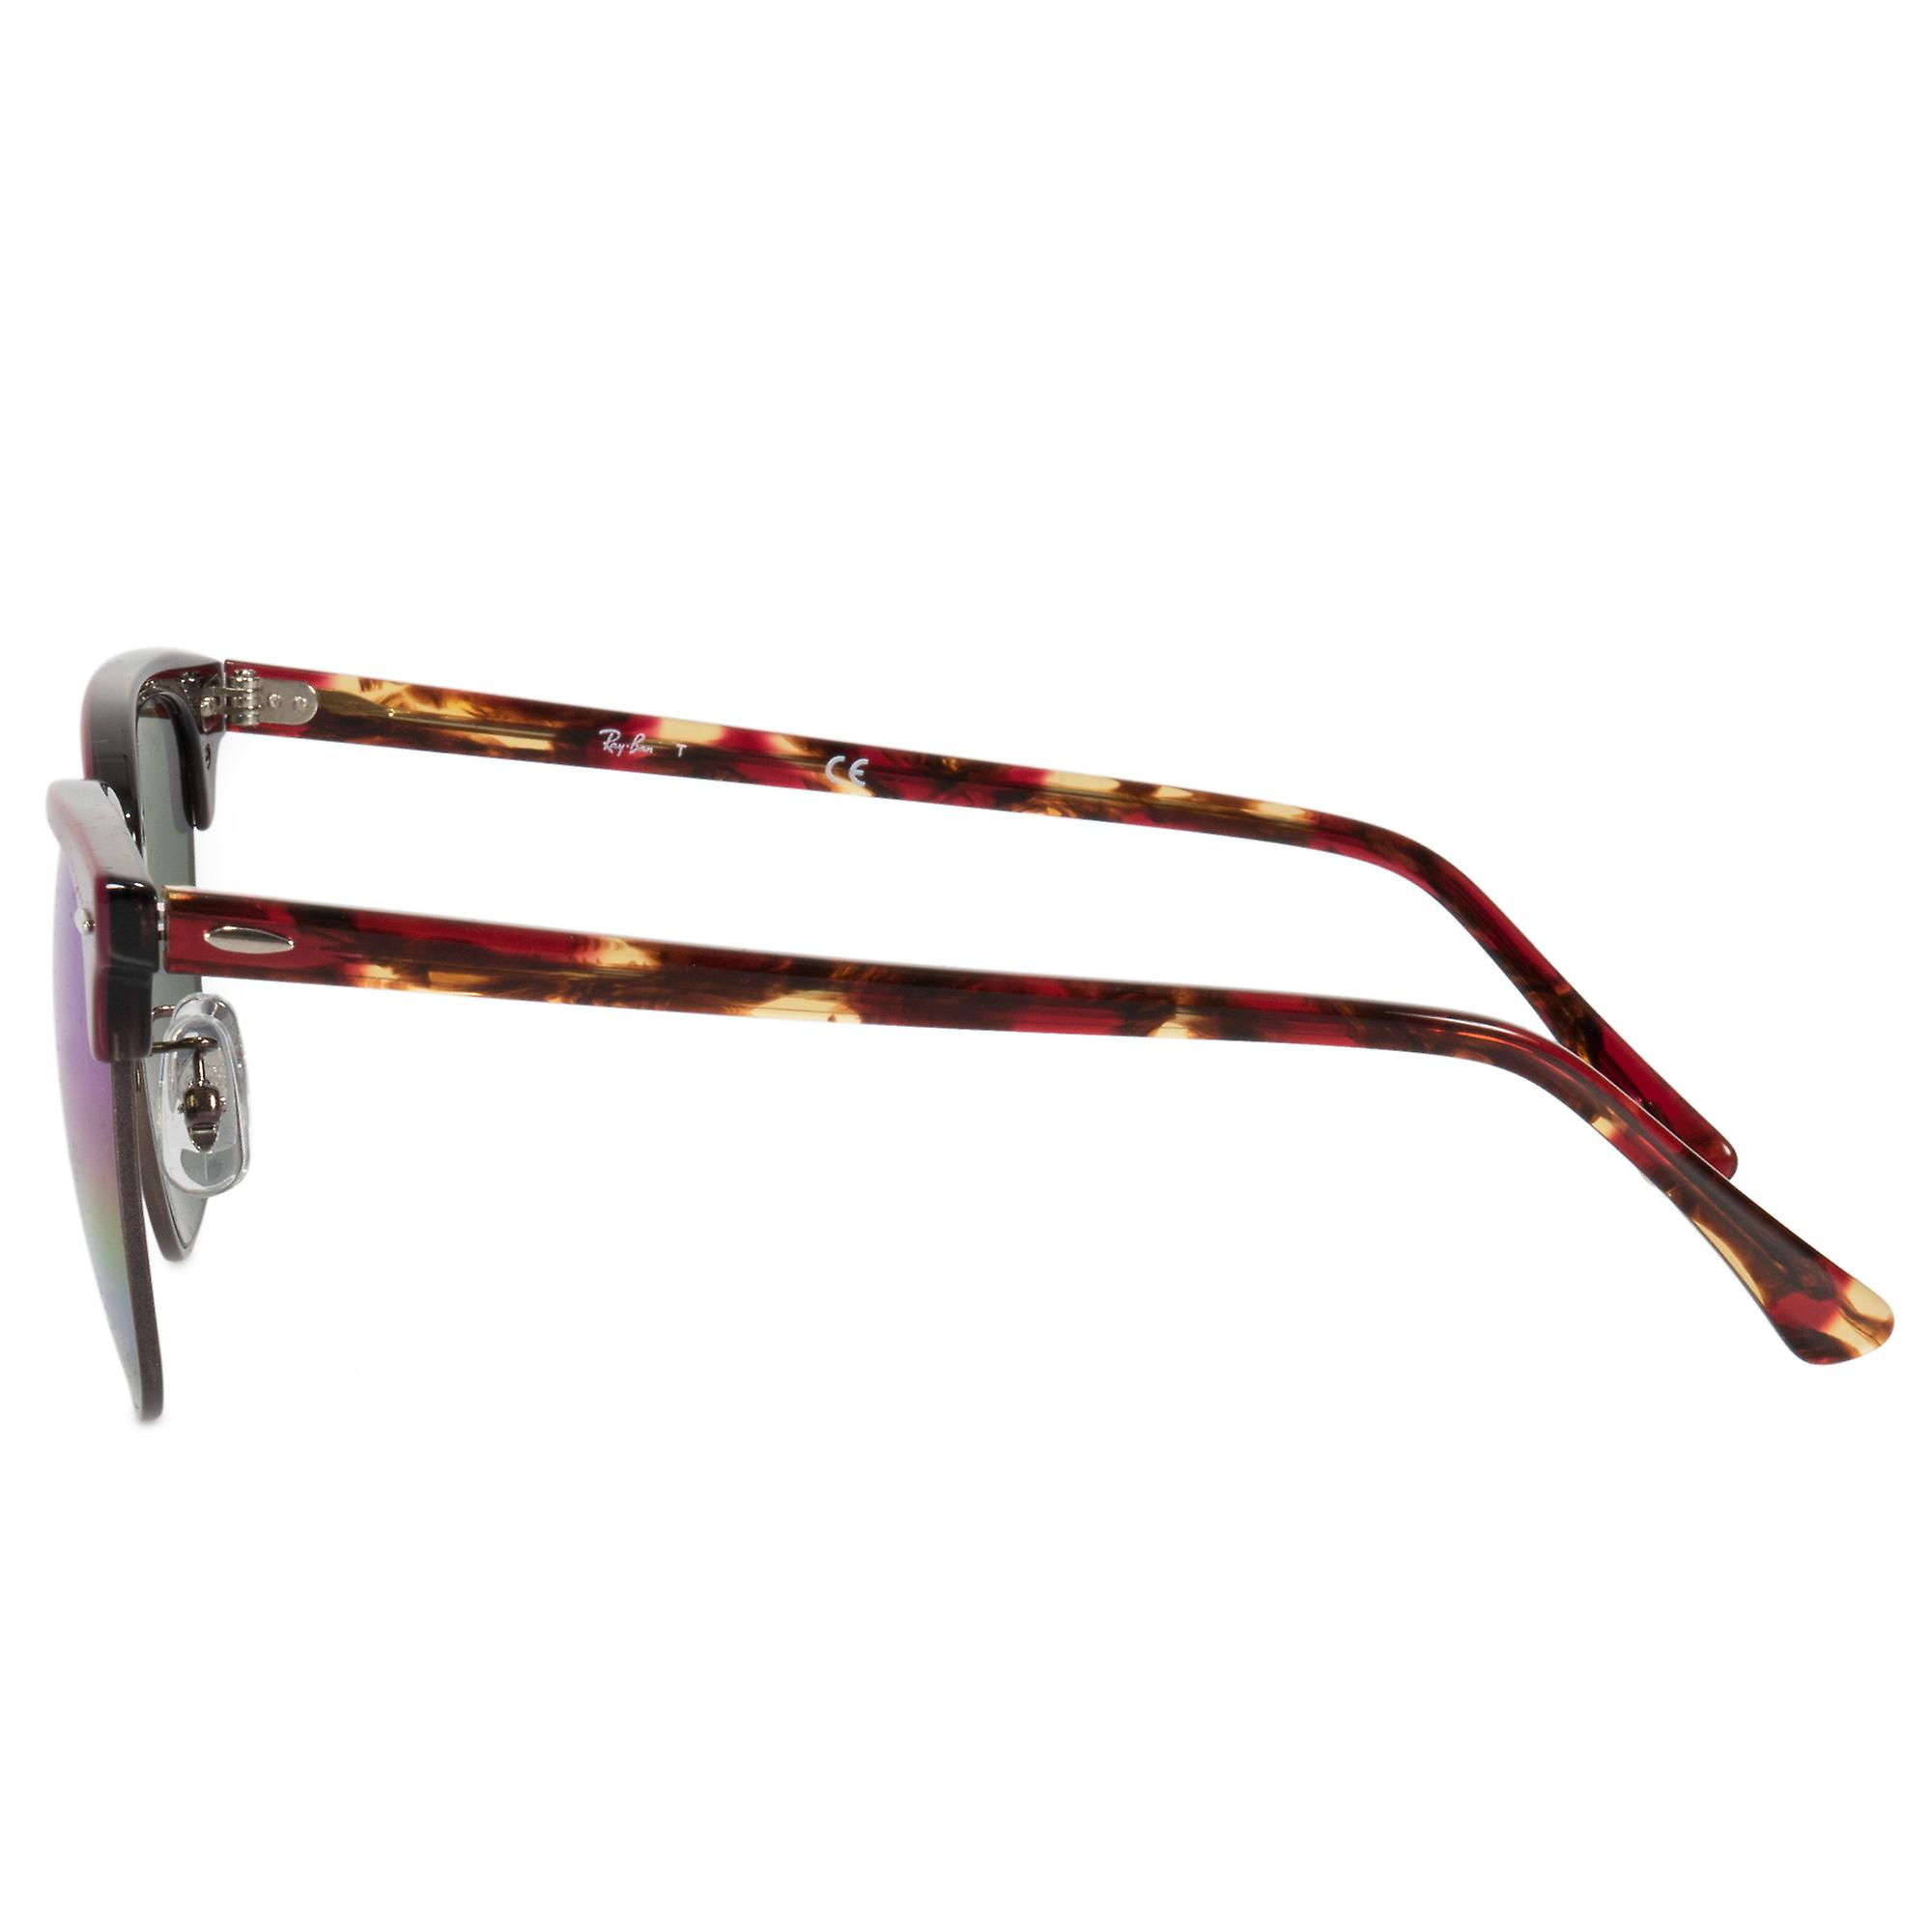 d2b0d486821a2 Ray-Ban Clubmaster Mineral Flash Lens Sunglasses RB3016-F 1222C2 55 ...